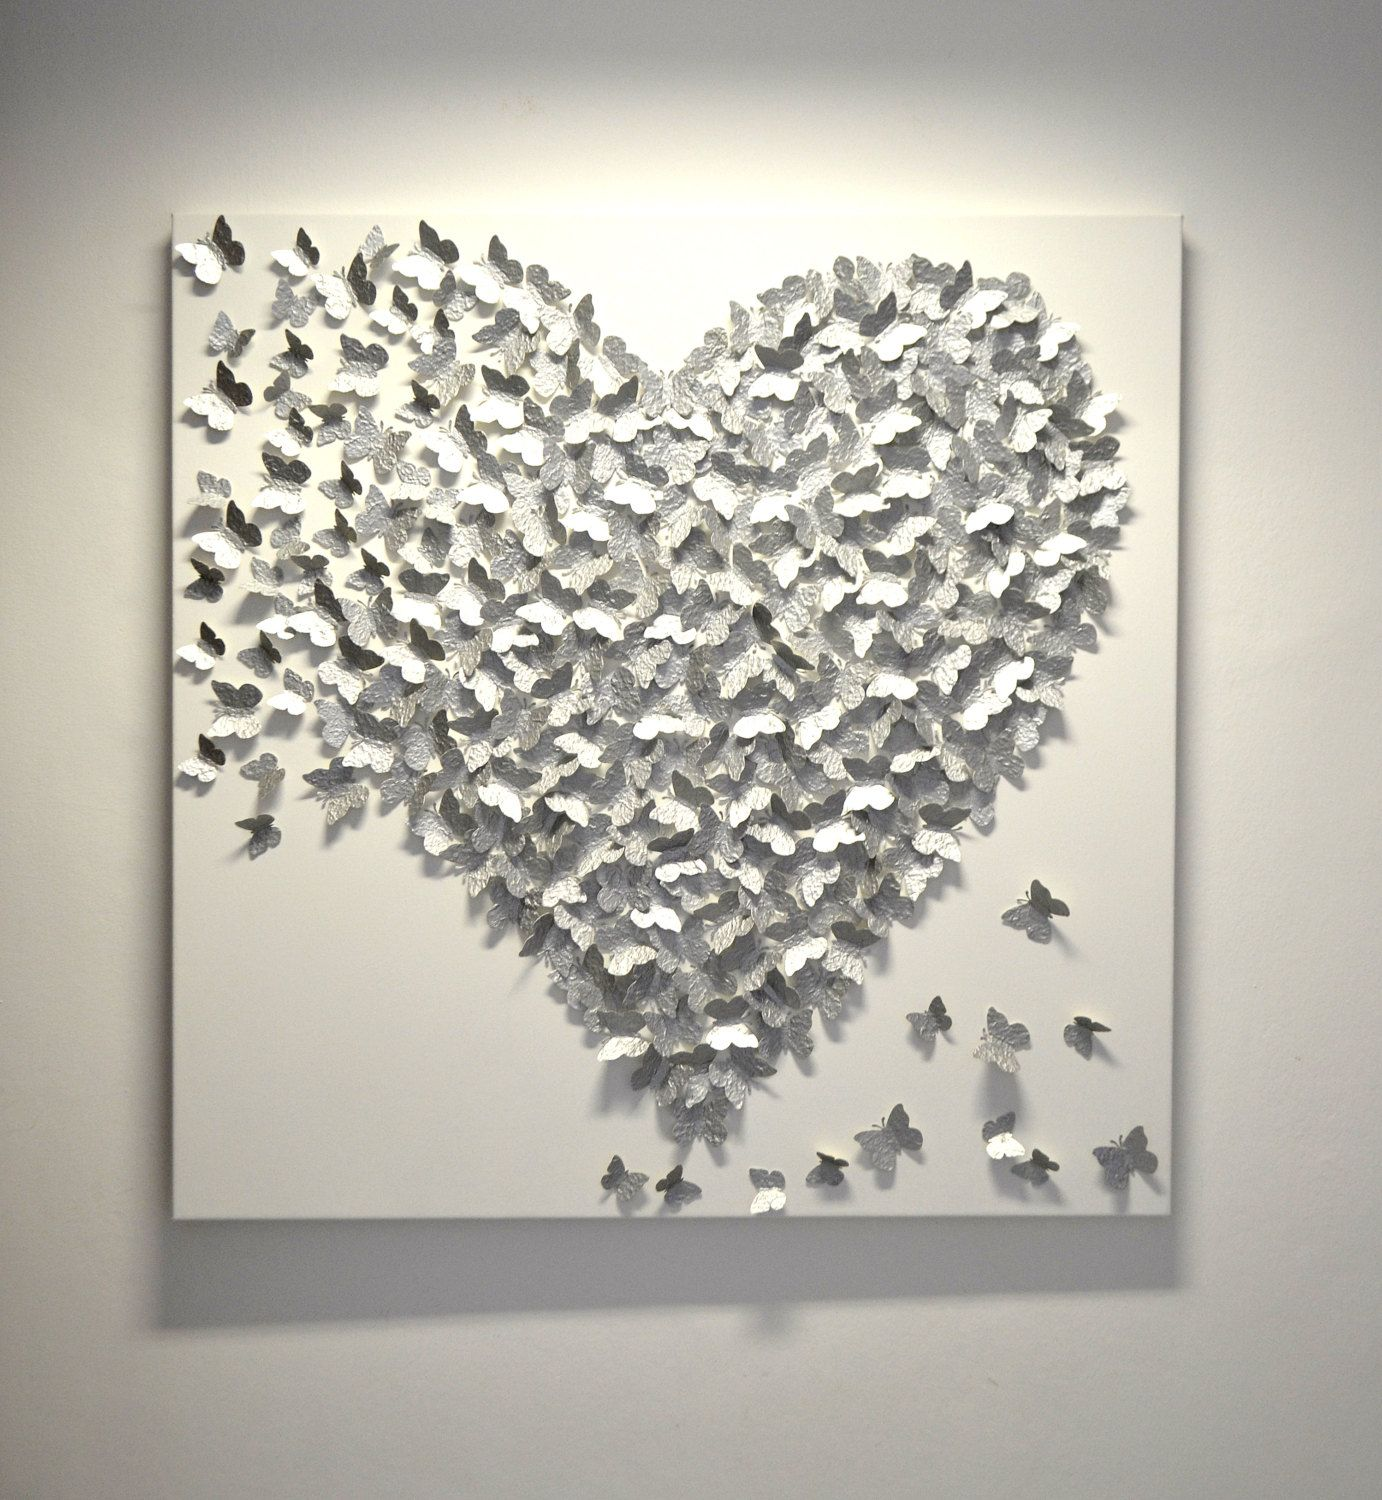 Wall Decoration For Wedding Anniversary : D silver butterfly art hollywood regency glam modern